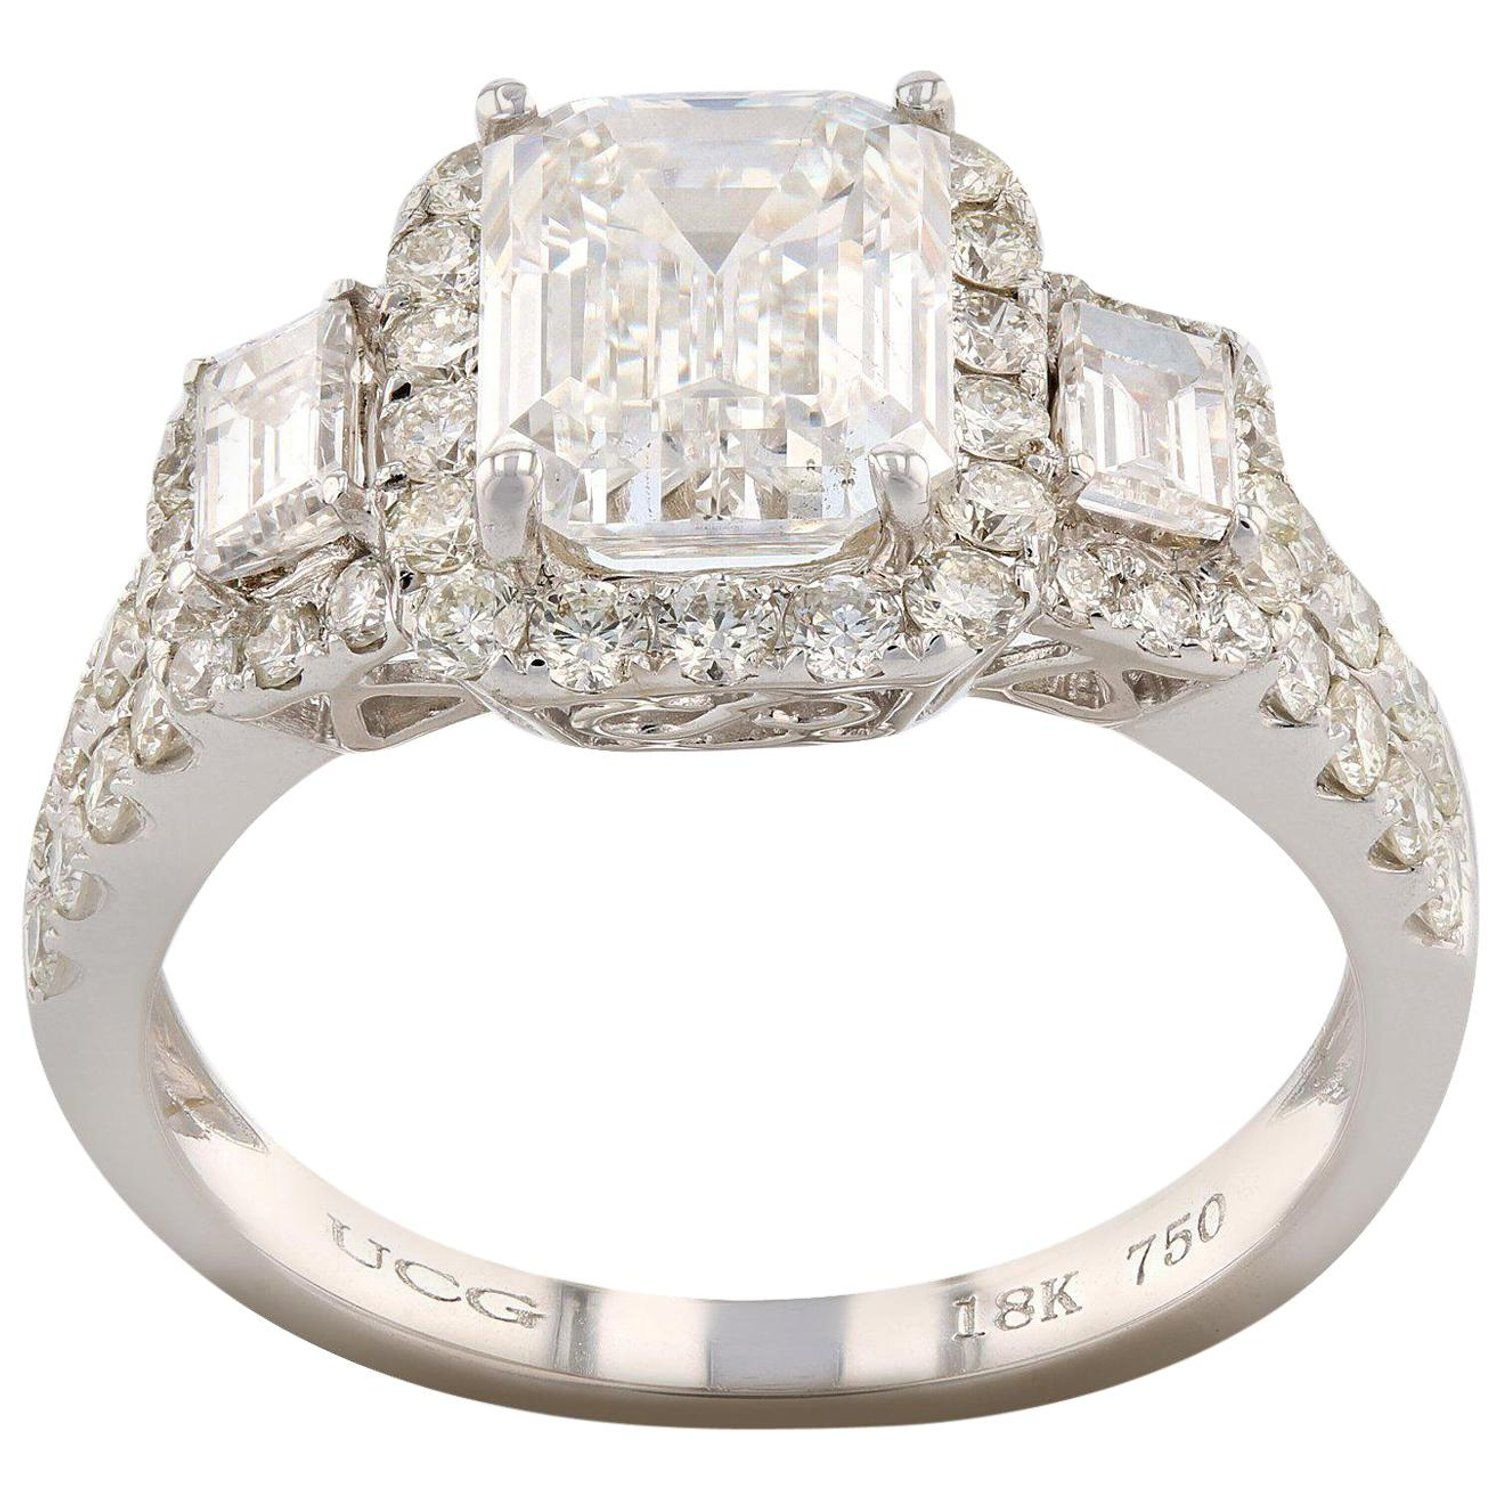 GIA Certified 2 04 Carat SI 1 Diamond Engagement Ring